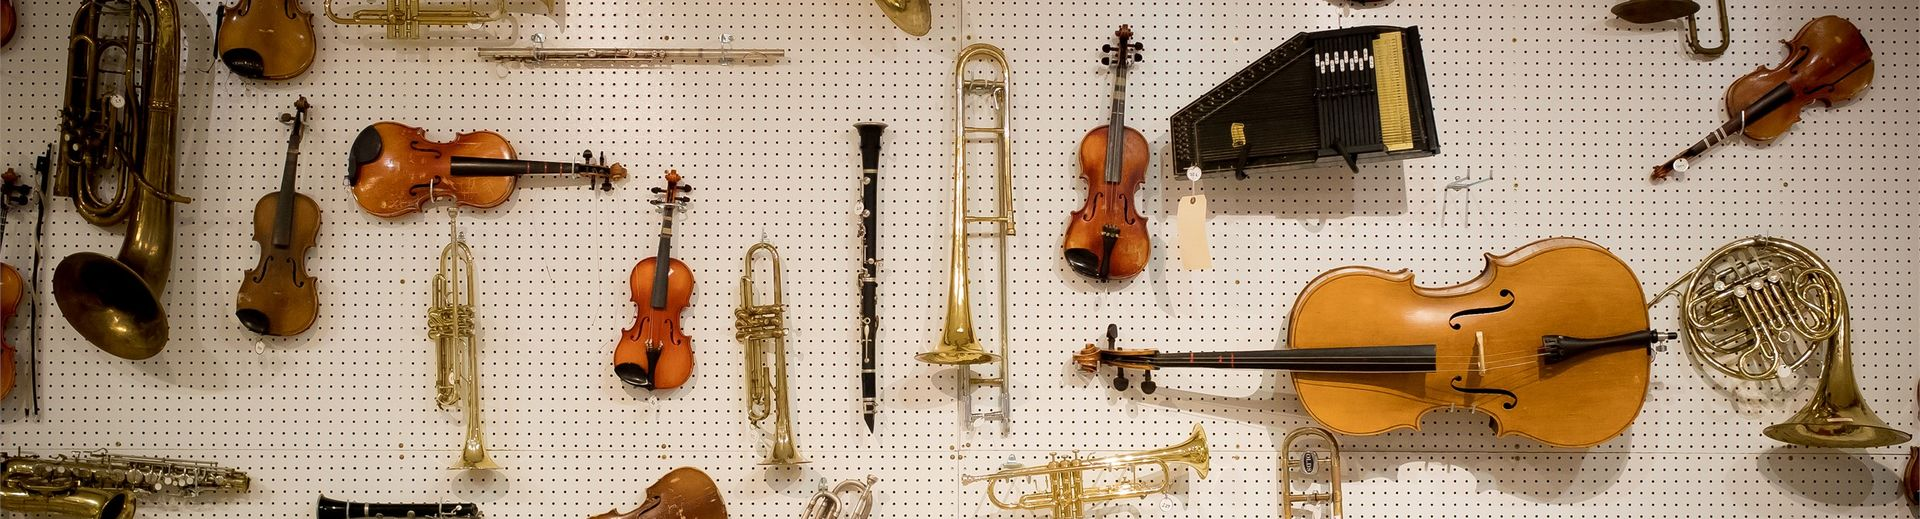 Many different instruments hanging on a pegboard wall.